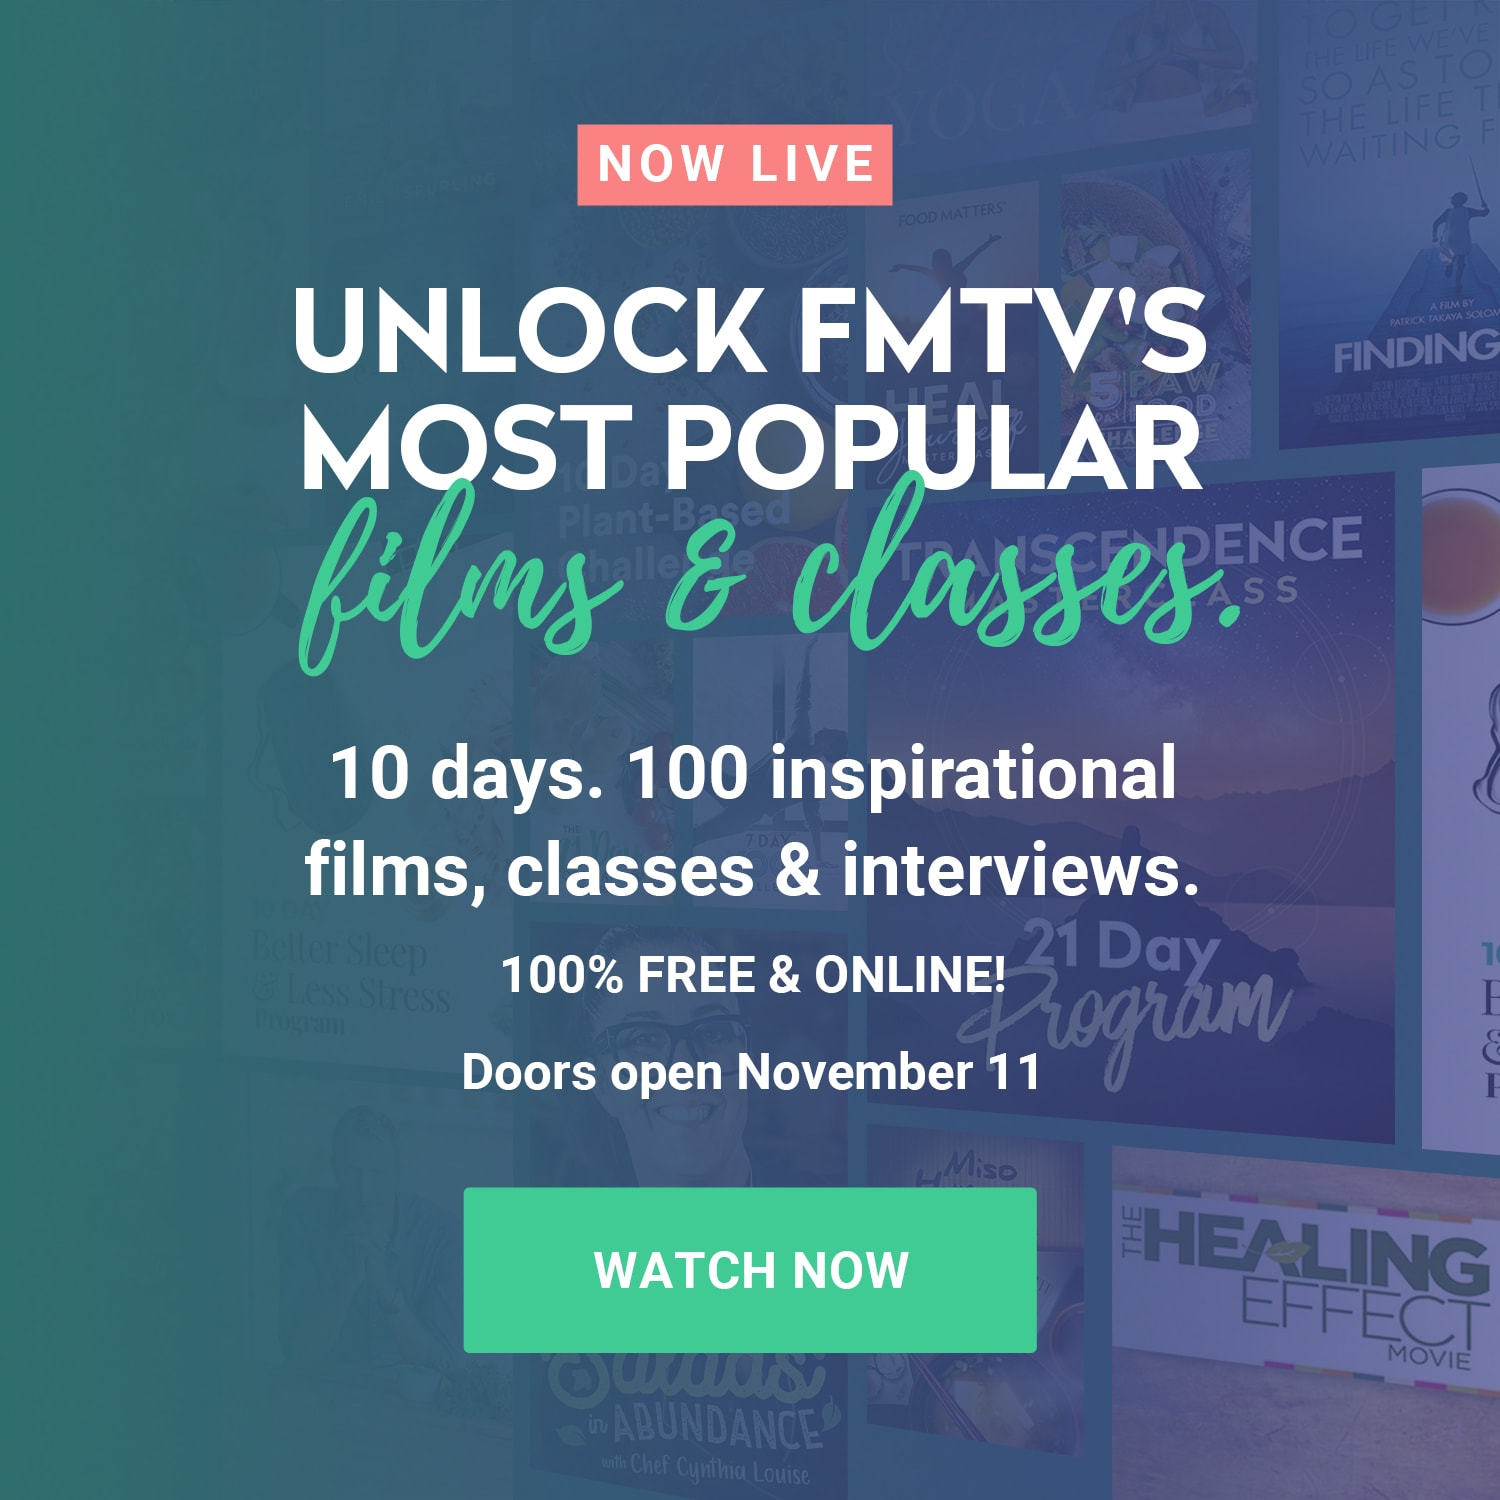 Try FMTV for FREE